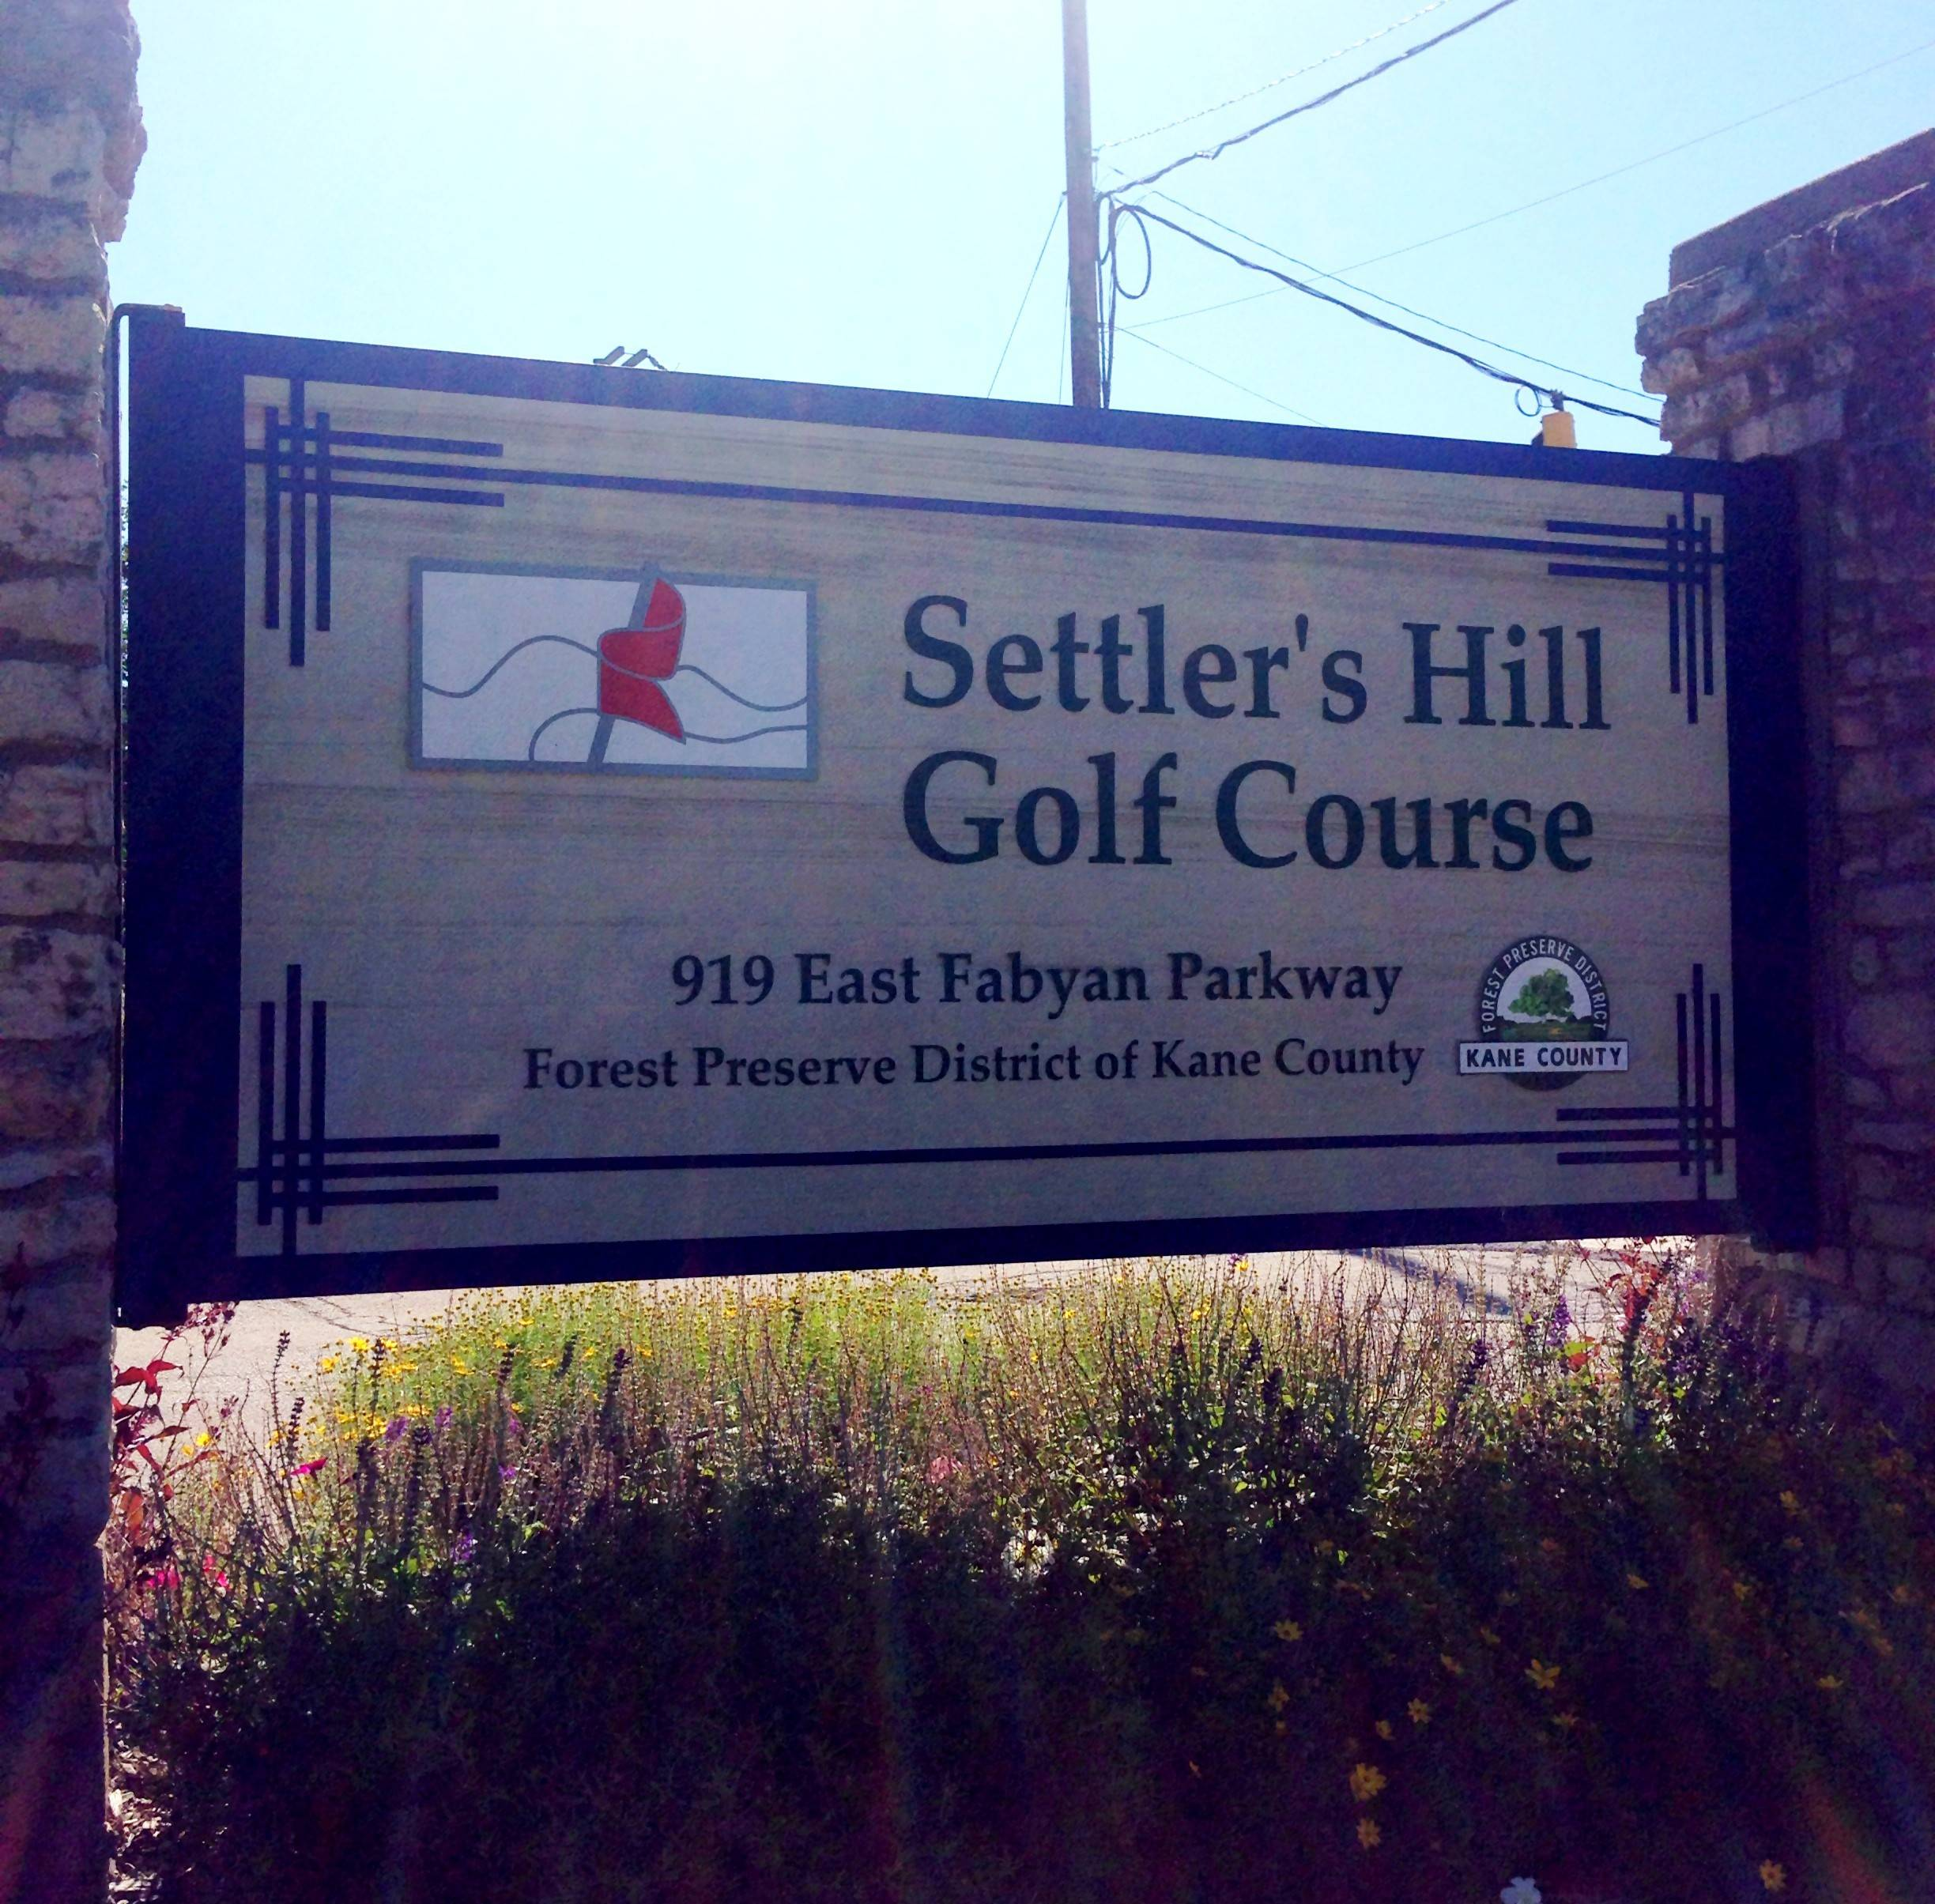 Settler's Hill Golf Course in Geneva is on the verge of seeing major upgrades begin as the Kane County Forest Preserve District will use several million dollars socked away by the county to make the course more competitive.